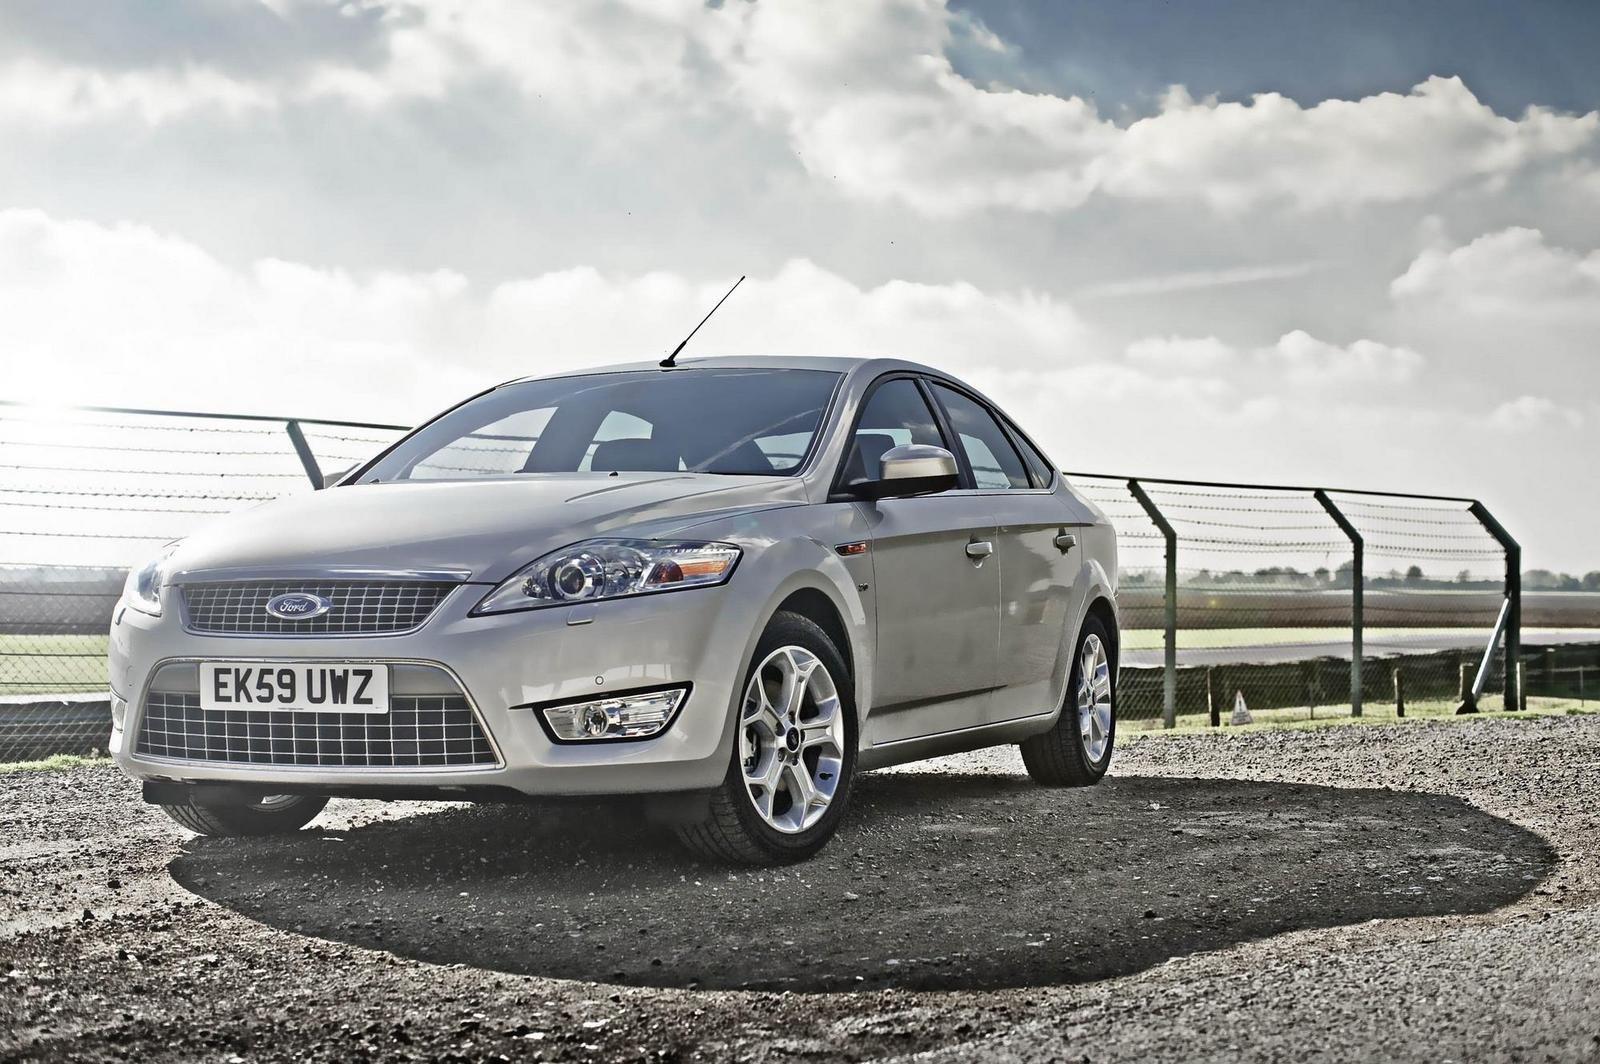 2010 ford mondeo titanium econetic review top speed. Black Bedroom Furniture Sets. Home Design Ideas